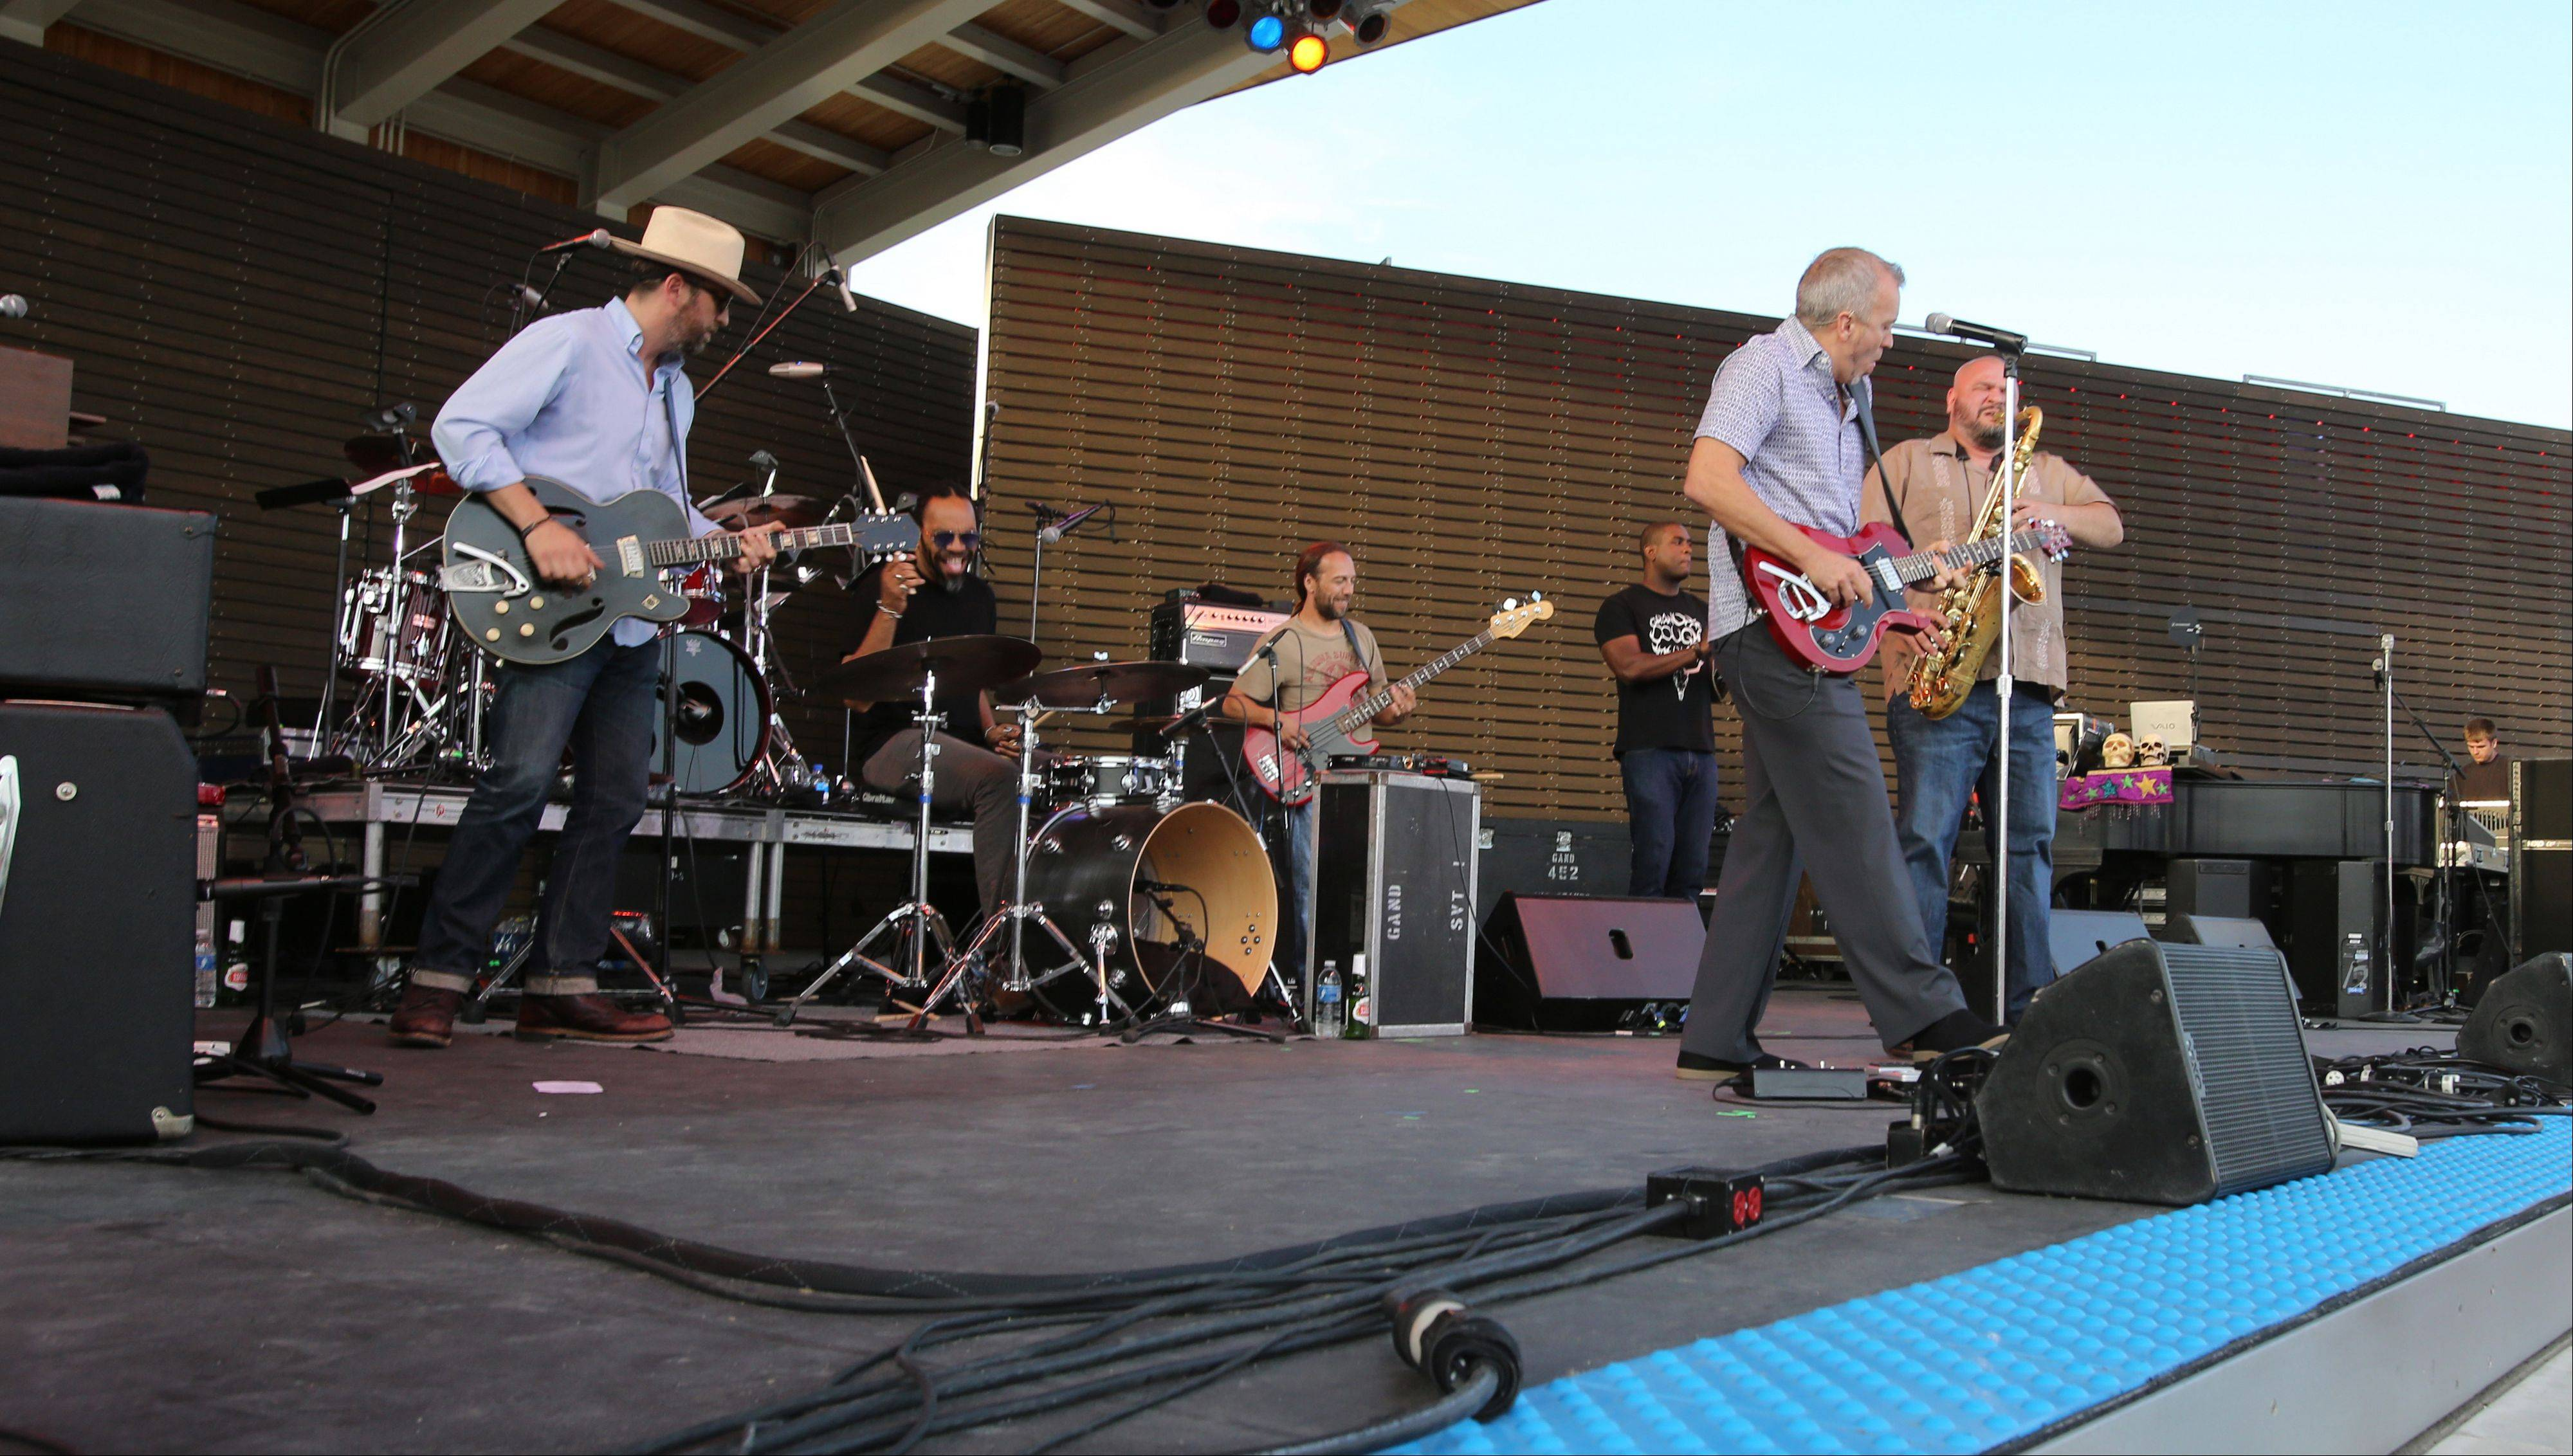 The band JJ Grey & Mofro, opens the new RiverEdge Park, coinciding with the 17th annual Blues on the Fox festival.